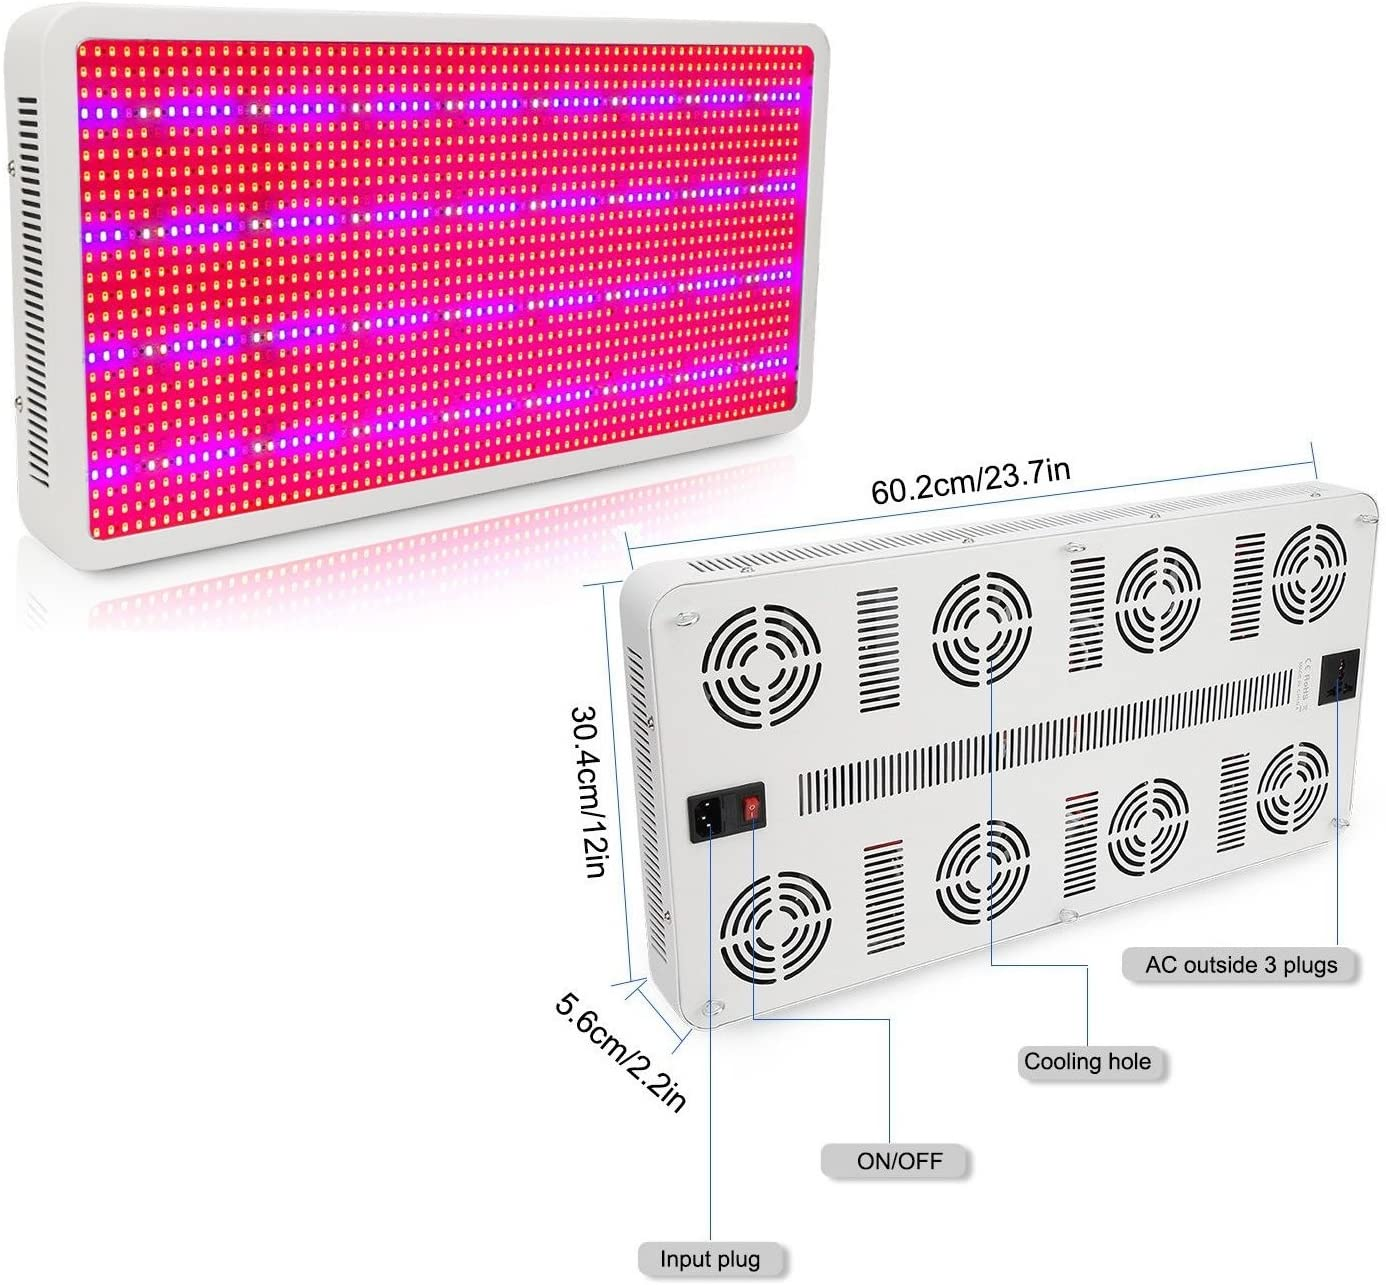 Full Spectrum 3000W LED Grow Light Panel w Built in Ventilation System for Indoor Hydroponic Cultivation